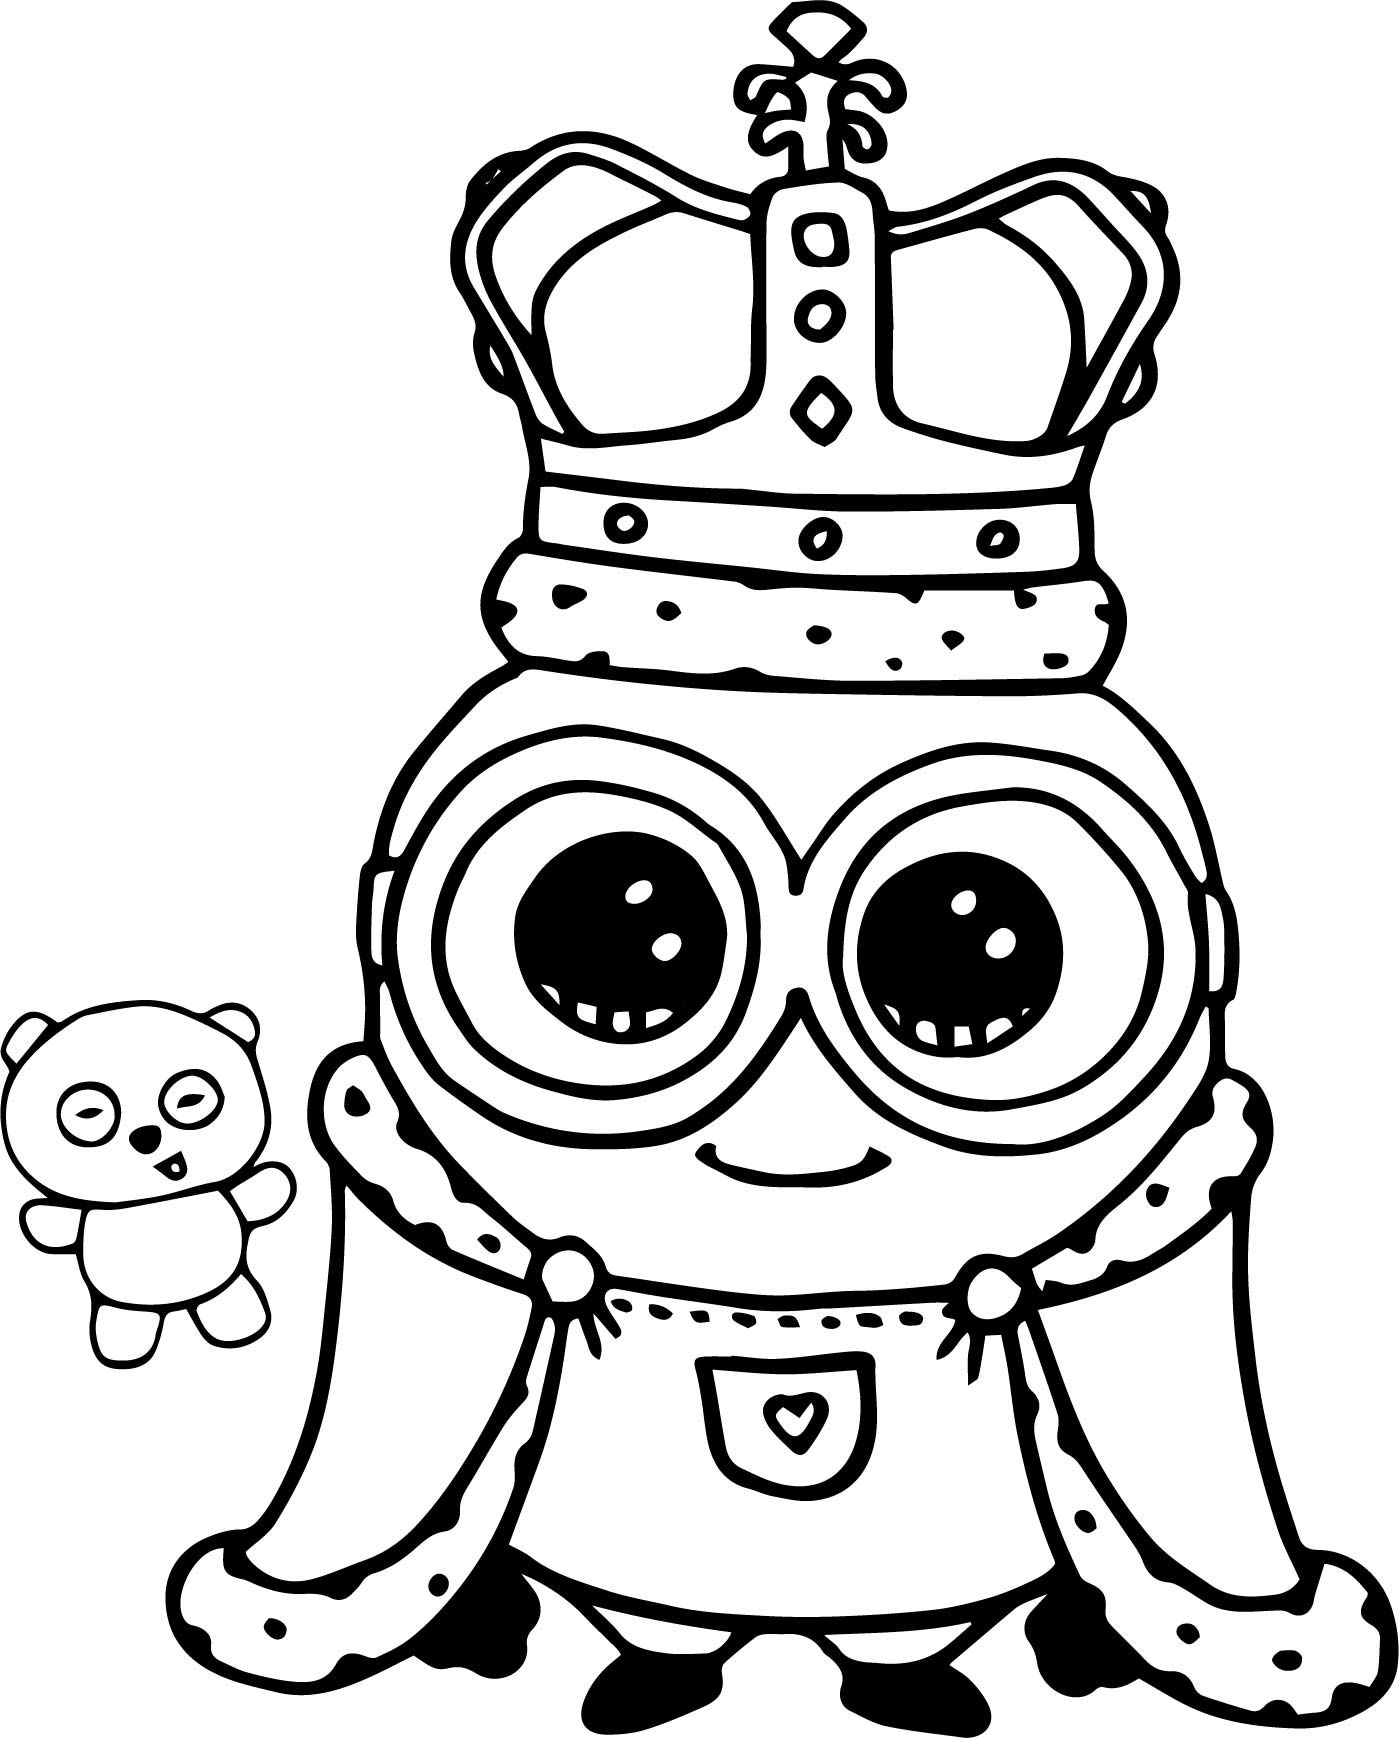 Nice Minion King Bob Cute Coloring Page Minion Coloring Pages Minions Coloring Pages Cute Coloring Pages